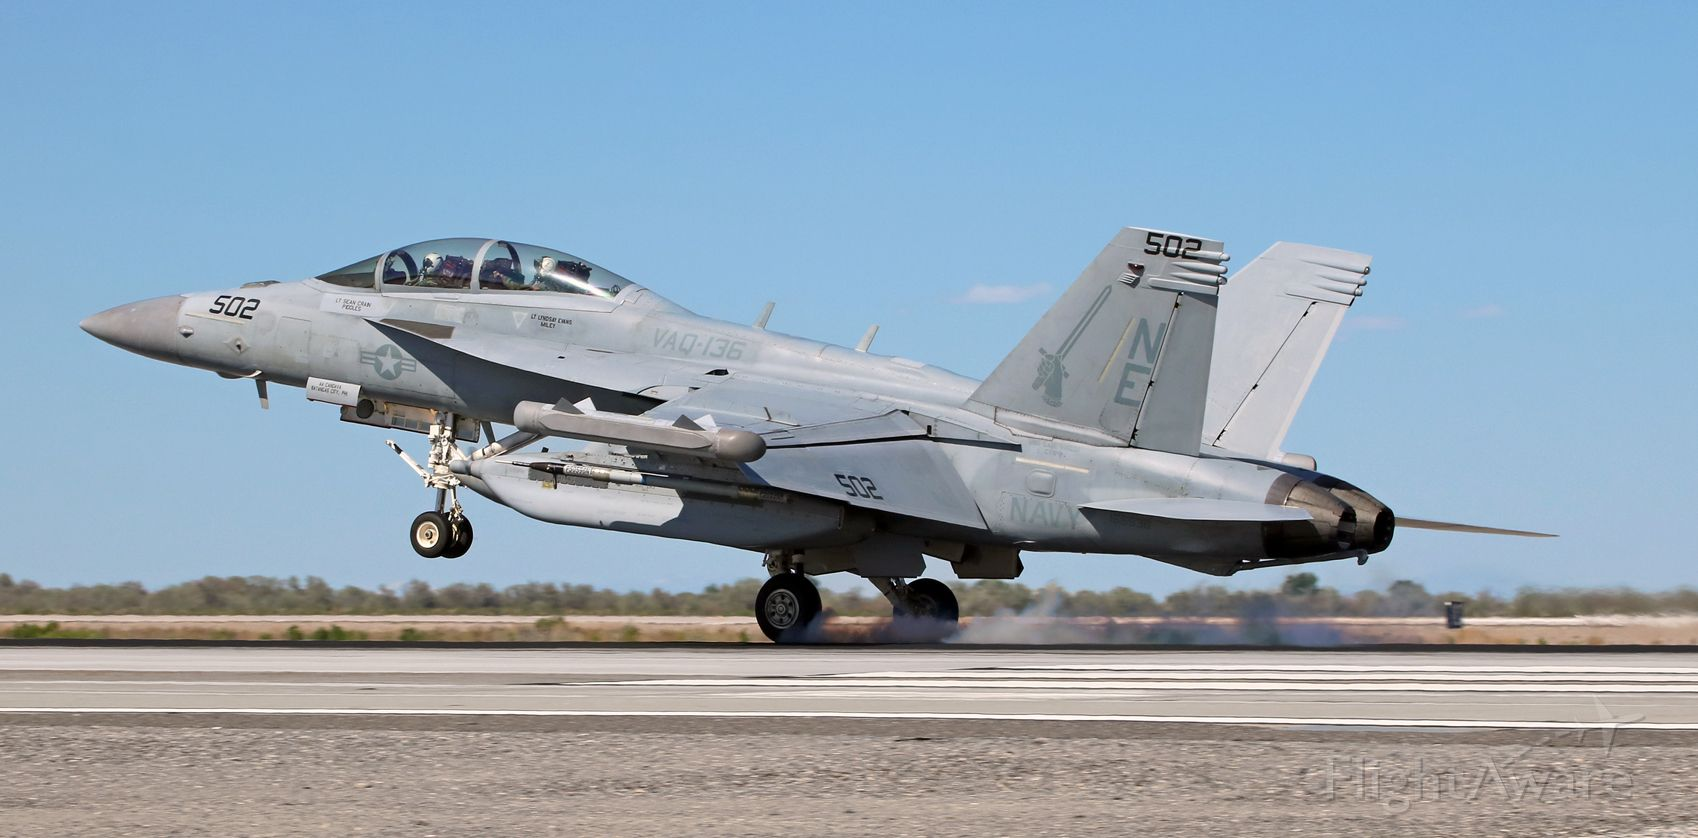 """16-6936 — - A VAQ-136 (Electronic Attack Squadron One Thirty Six) """"Gauntlets"""" E/A-18G Growler, 166936, puts the mains down right by the keys on the runway 31L concrete as it returns to NAS Fallon after completing a combat training sortie.  The """"Gauntlets' Growlers are out of NAS Whidbey Island and are currently assigned to Carrier Air Wing Two, USS Carl Vinson (CVN-70, Puget Sound Naval Shipyard, Bremerton, WA)."""